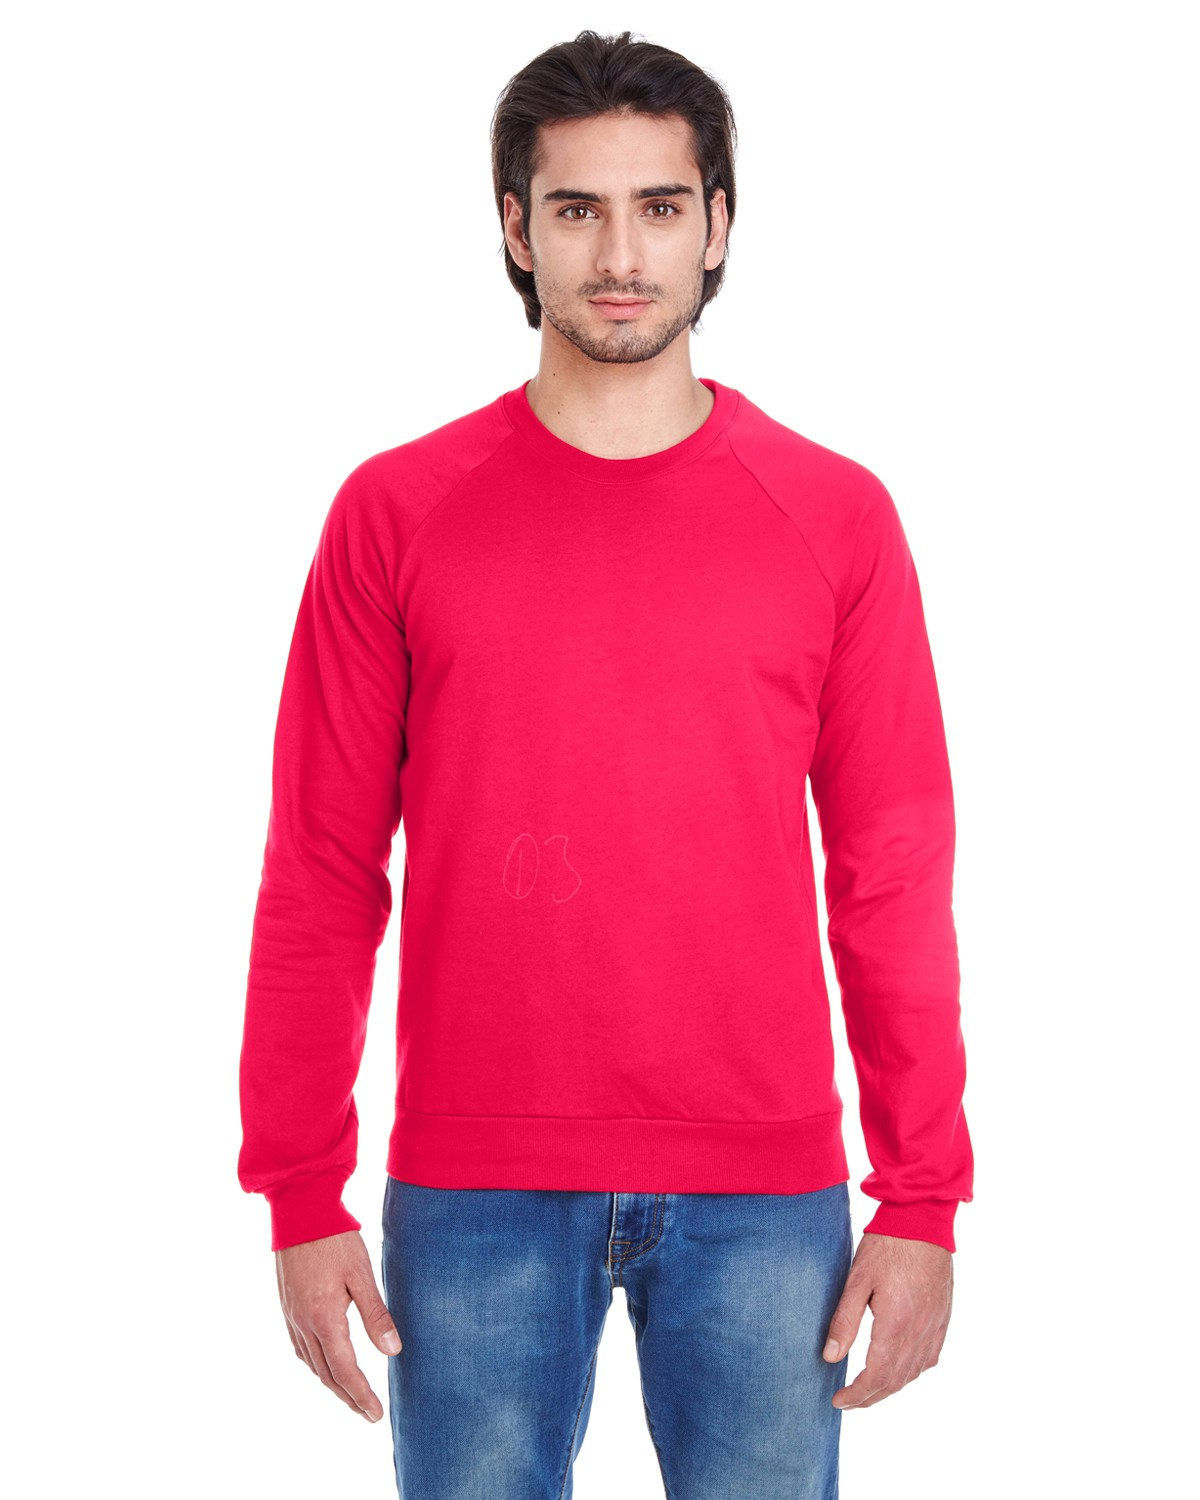 5454W American Apparel RED